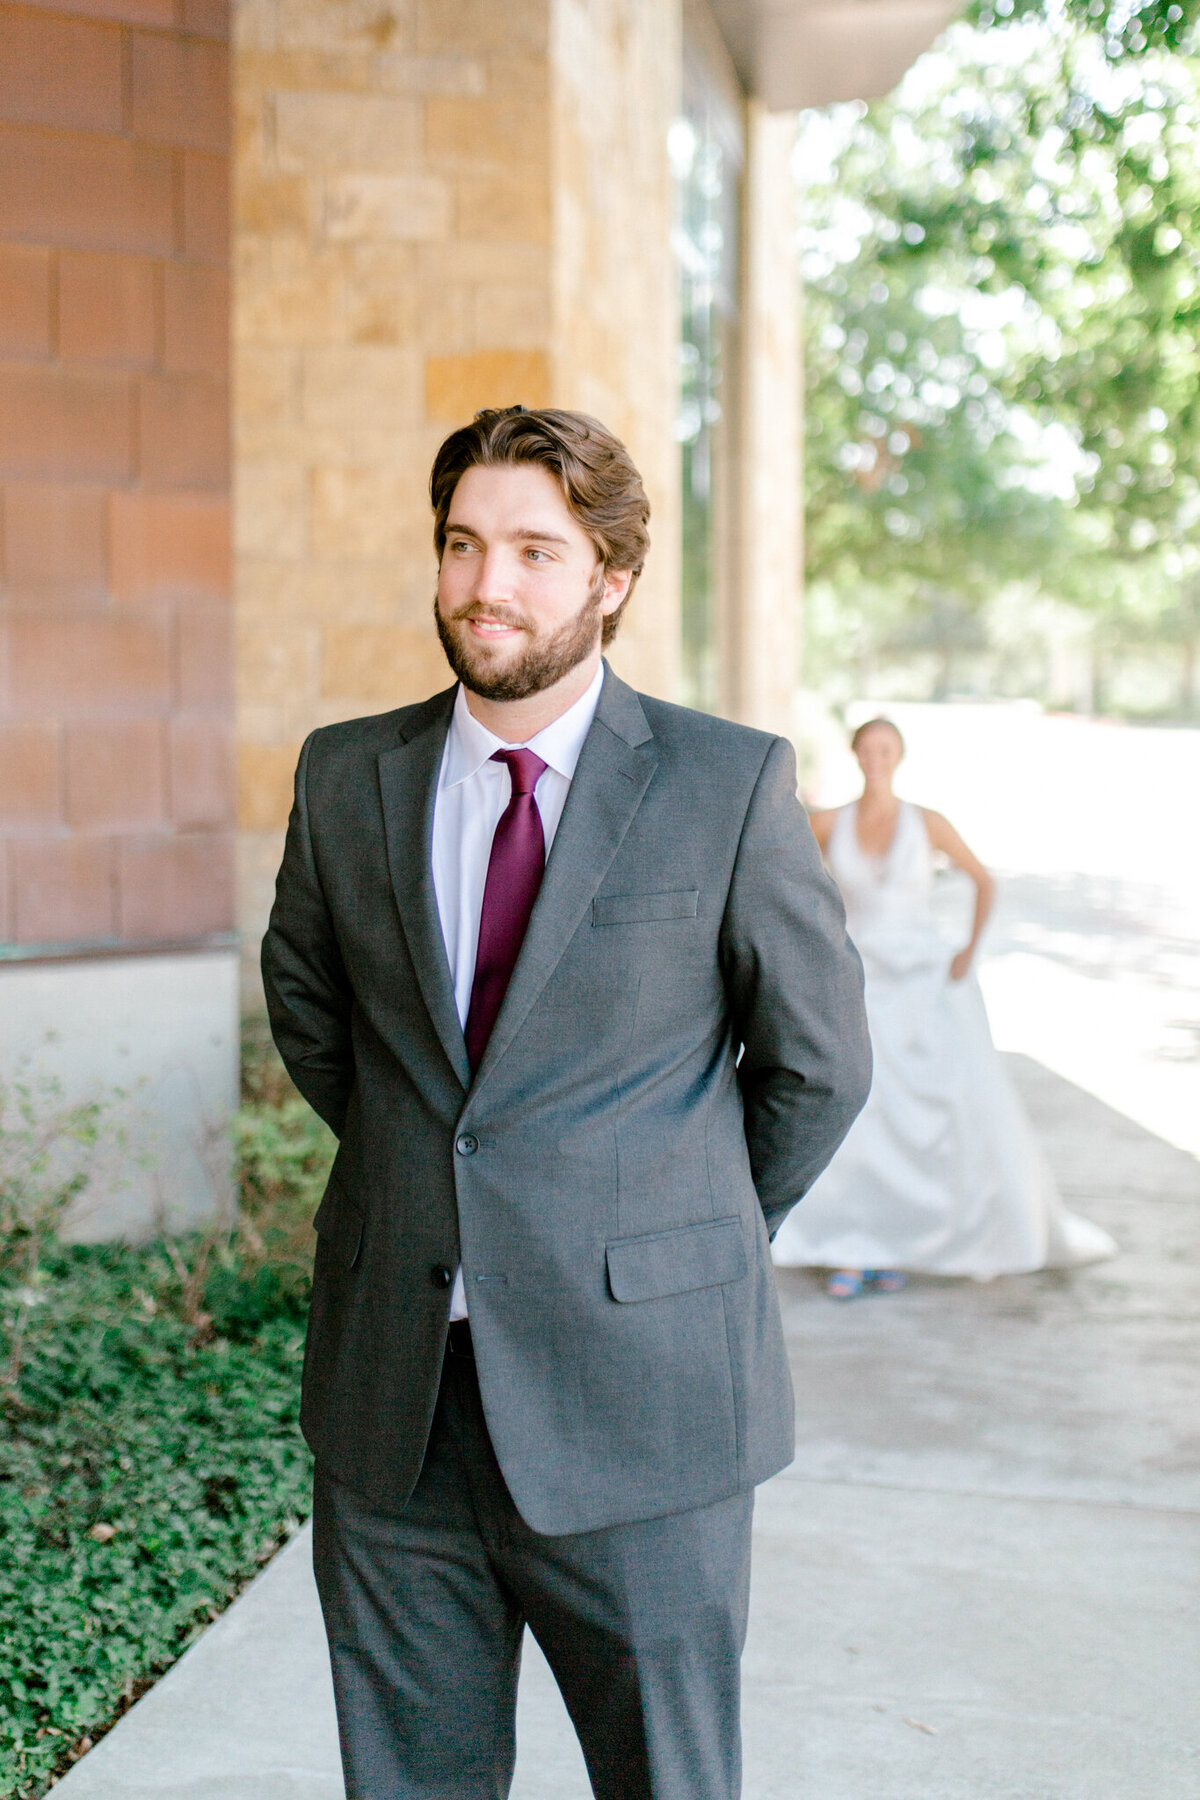 Kaylee & Michael's Wedding at Watermark Community Church | Dallas Wedding Photographer | Sami Kathryn Photography-36